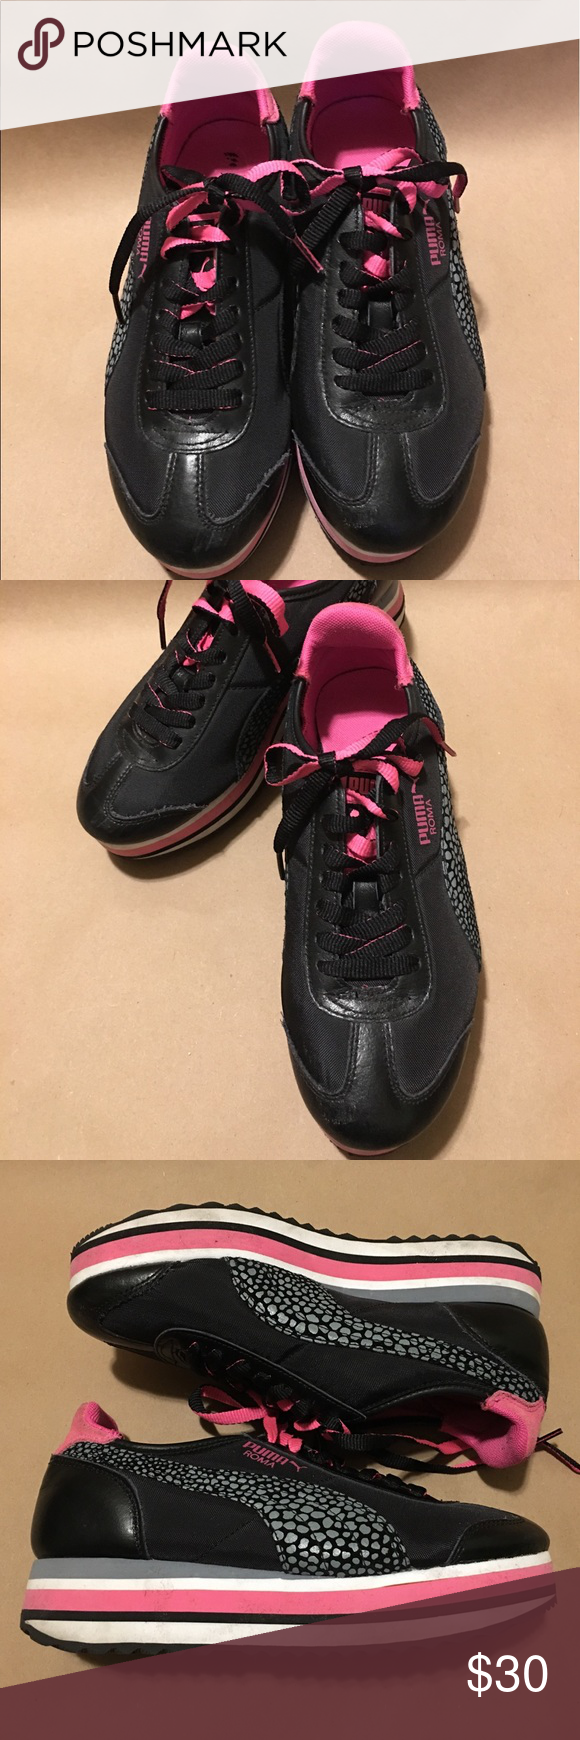 1c4a9096b84 Pre-owned Slim stacked Eco Ortholite Women s US 7 Clean uppers Tread on  soles look good and used sparingly Images are of actual shoes you ll  receive. Puma ...